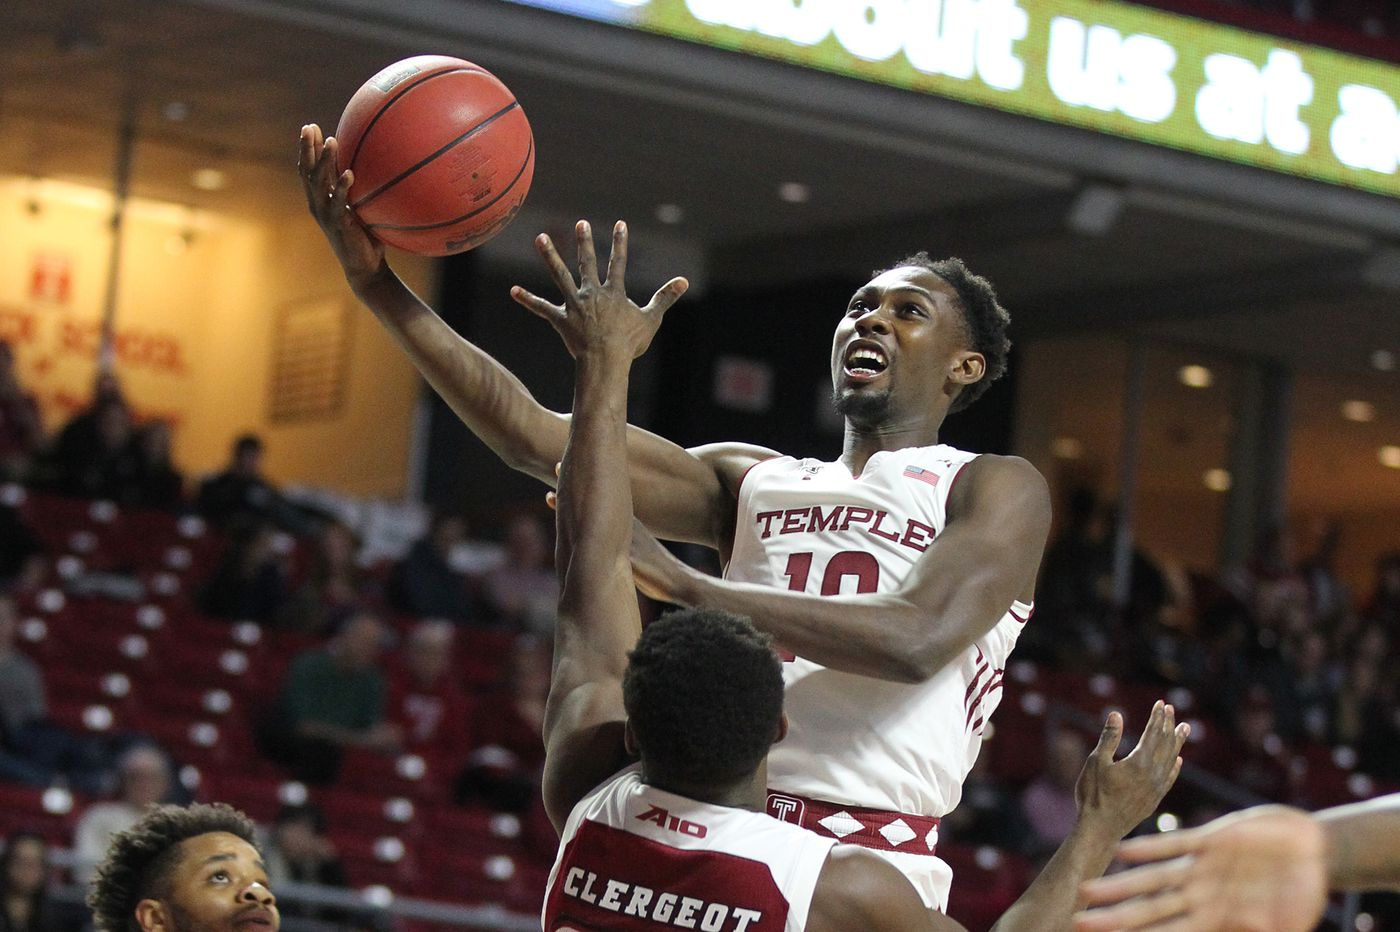 Shizz Alston's career-high 31 points lead Temple over UMass